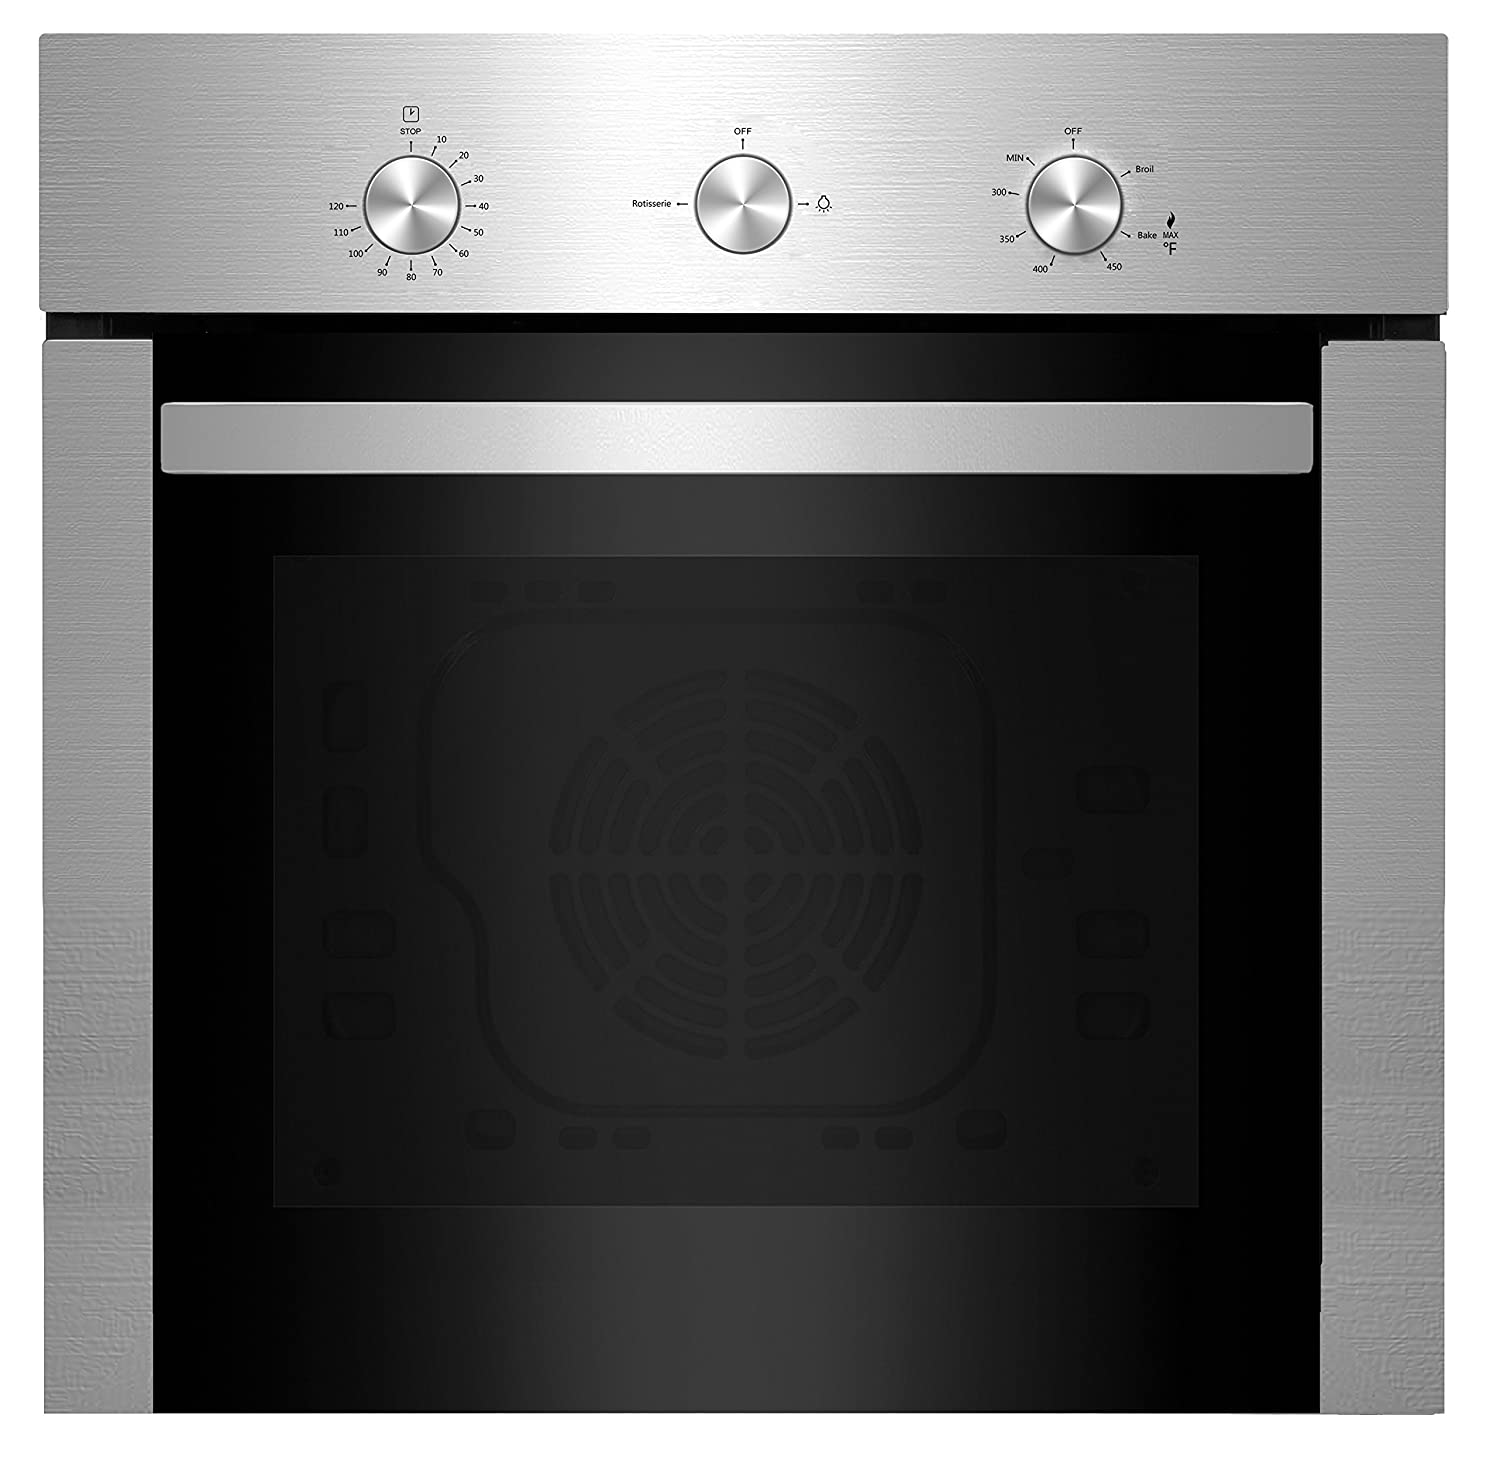 "Empava 24"" Stainless Steel Built-in NG/LPG Convertible Broil/Rotisserie Function Under Counter Gas Single Wall Ovens EMPV-24WOD04-LTL"